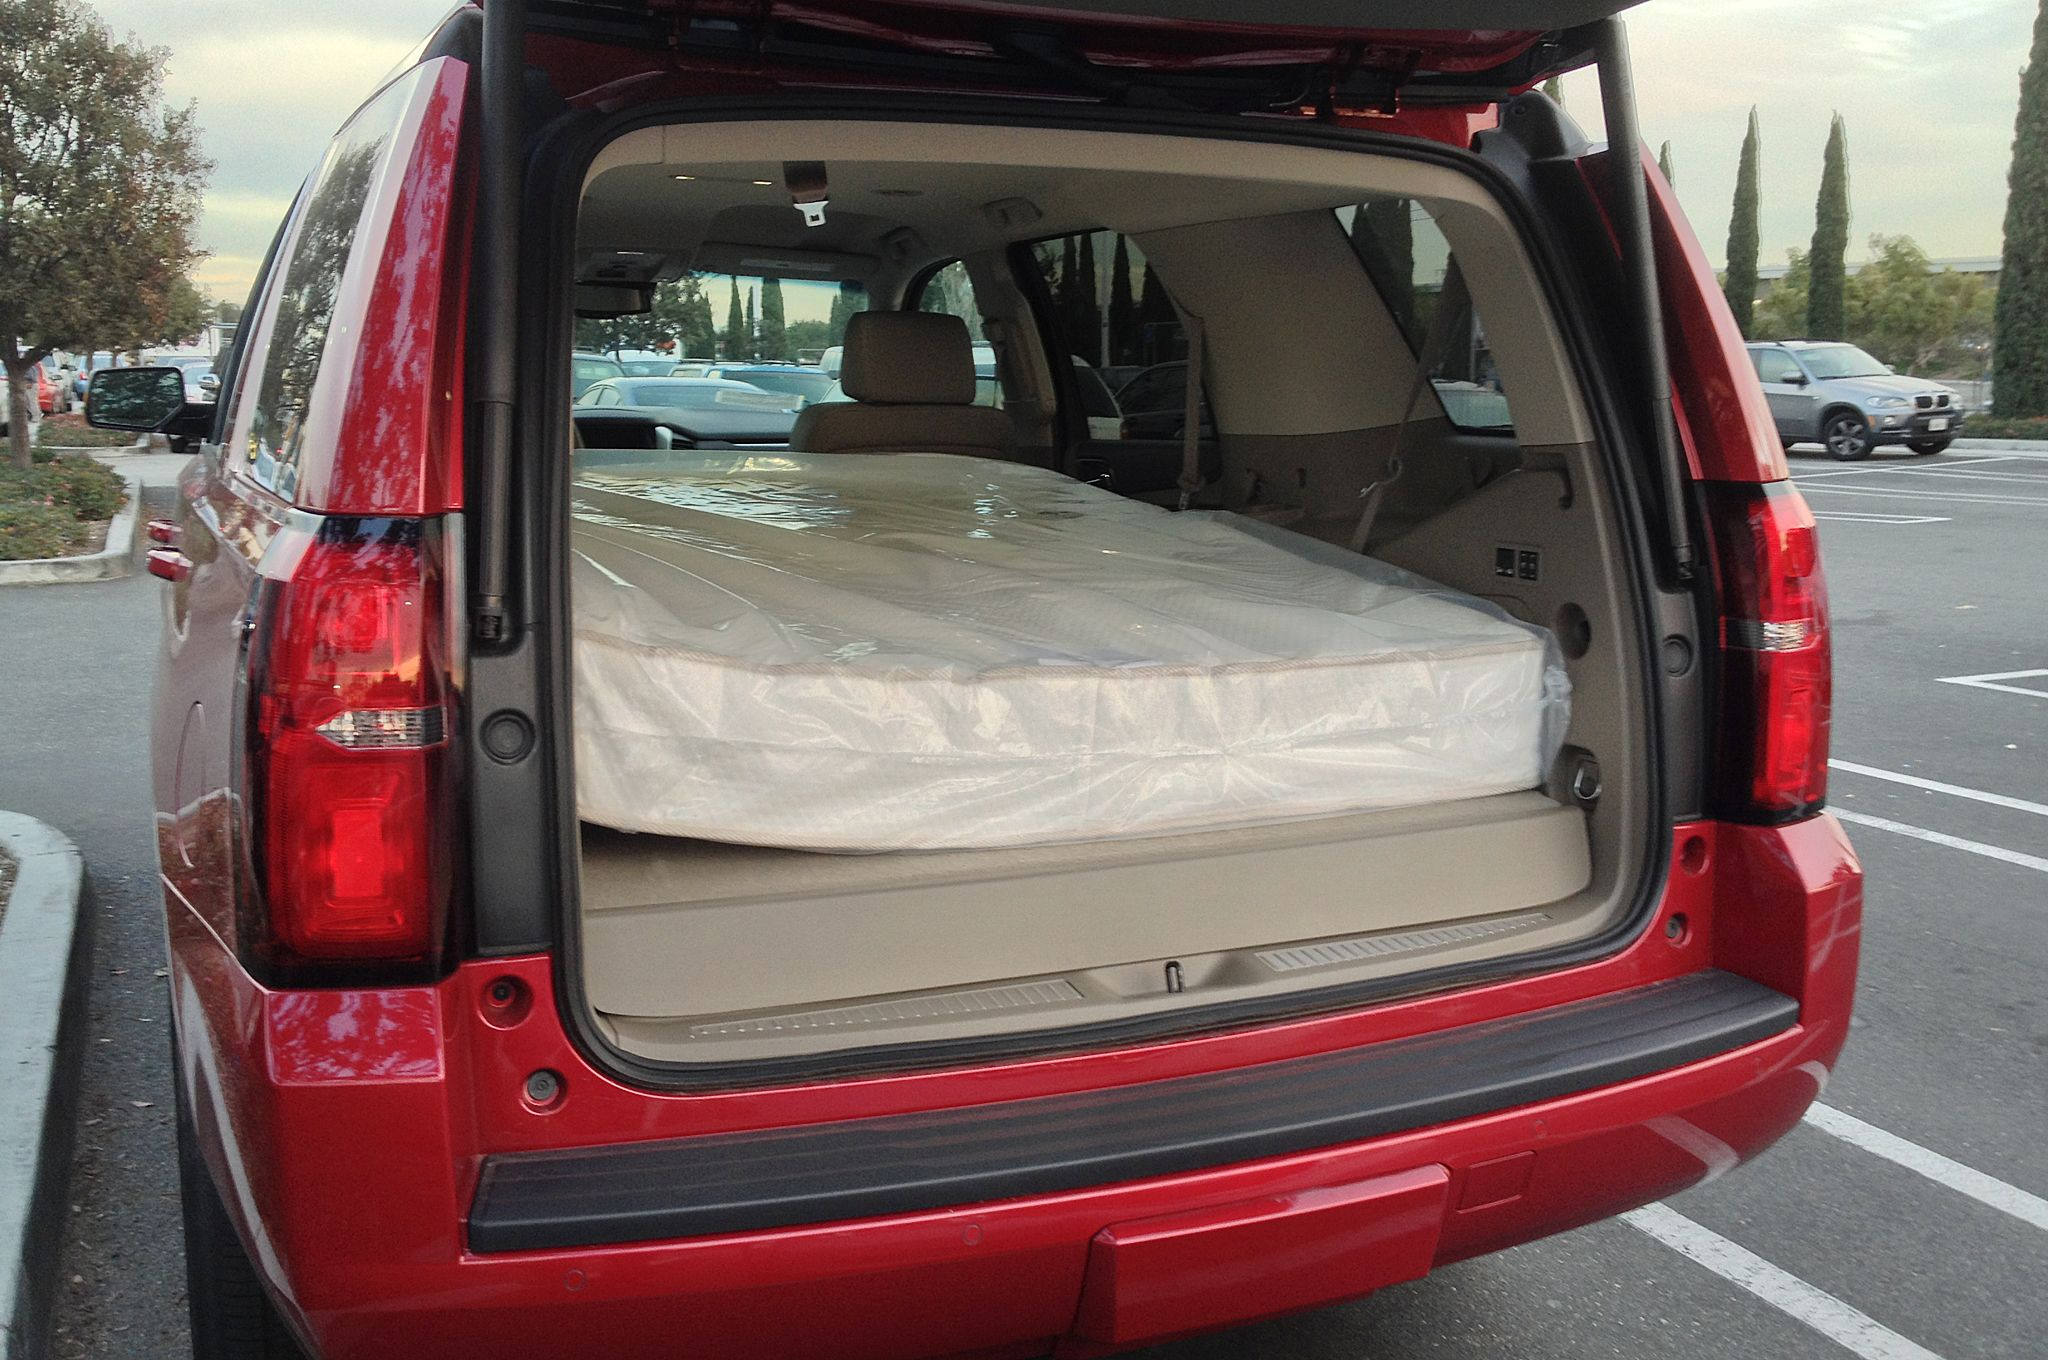 Image result for full size mattress in minivan | Outdoorscapes